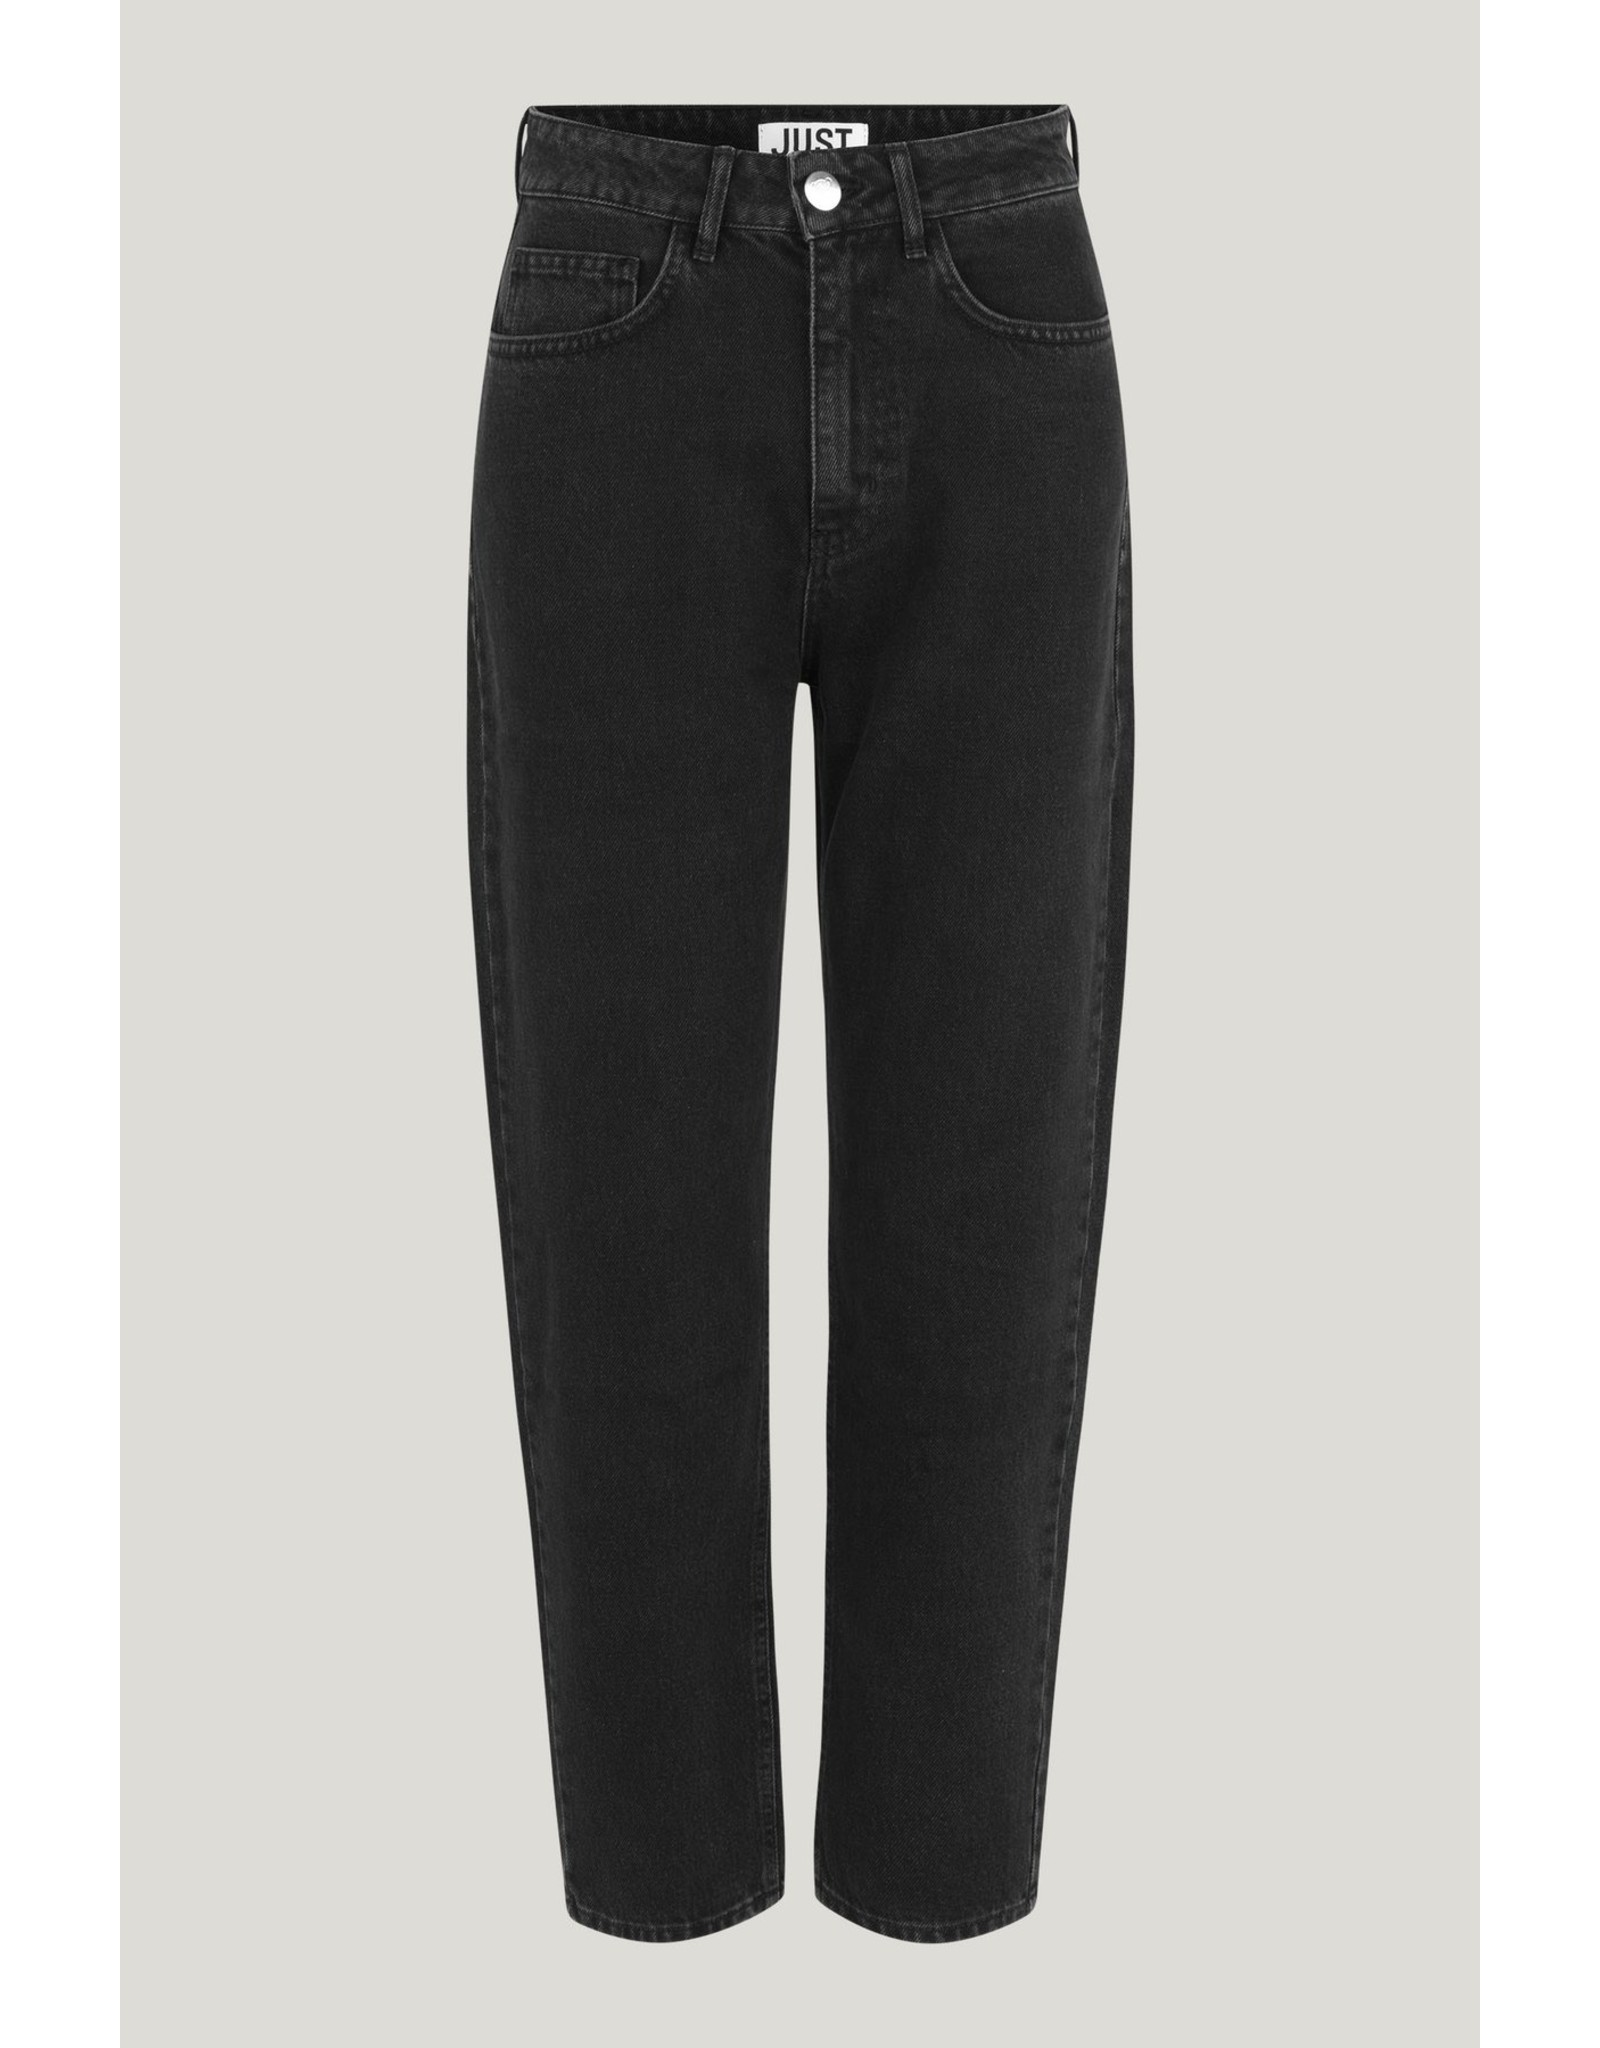 JUST FEMALE STORMY JEANS GREY